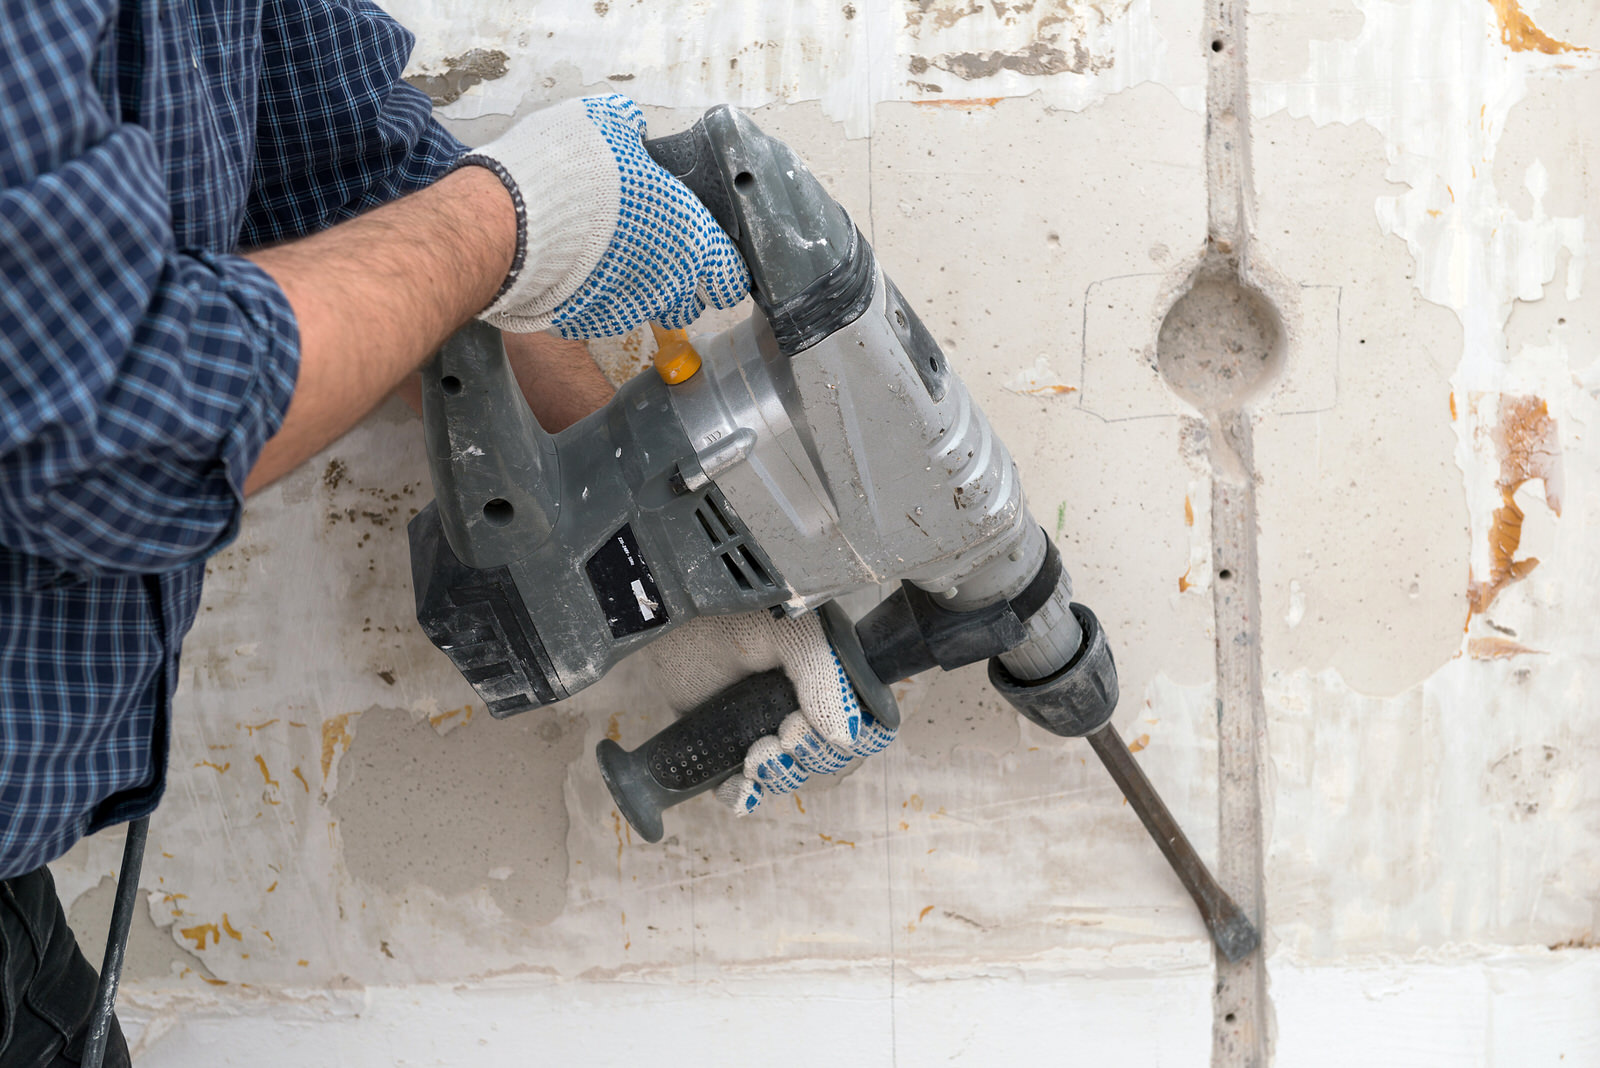 Video_Door_Bell_Entry_Man_Blue_Shirt_Jeans_Drilling_Cutting_into_concrete_wall_For_Electrical_Cable